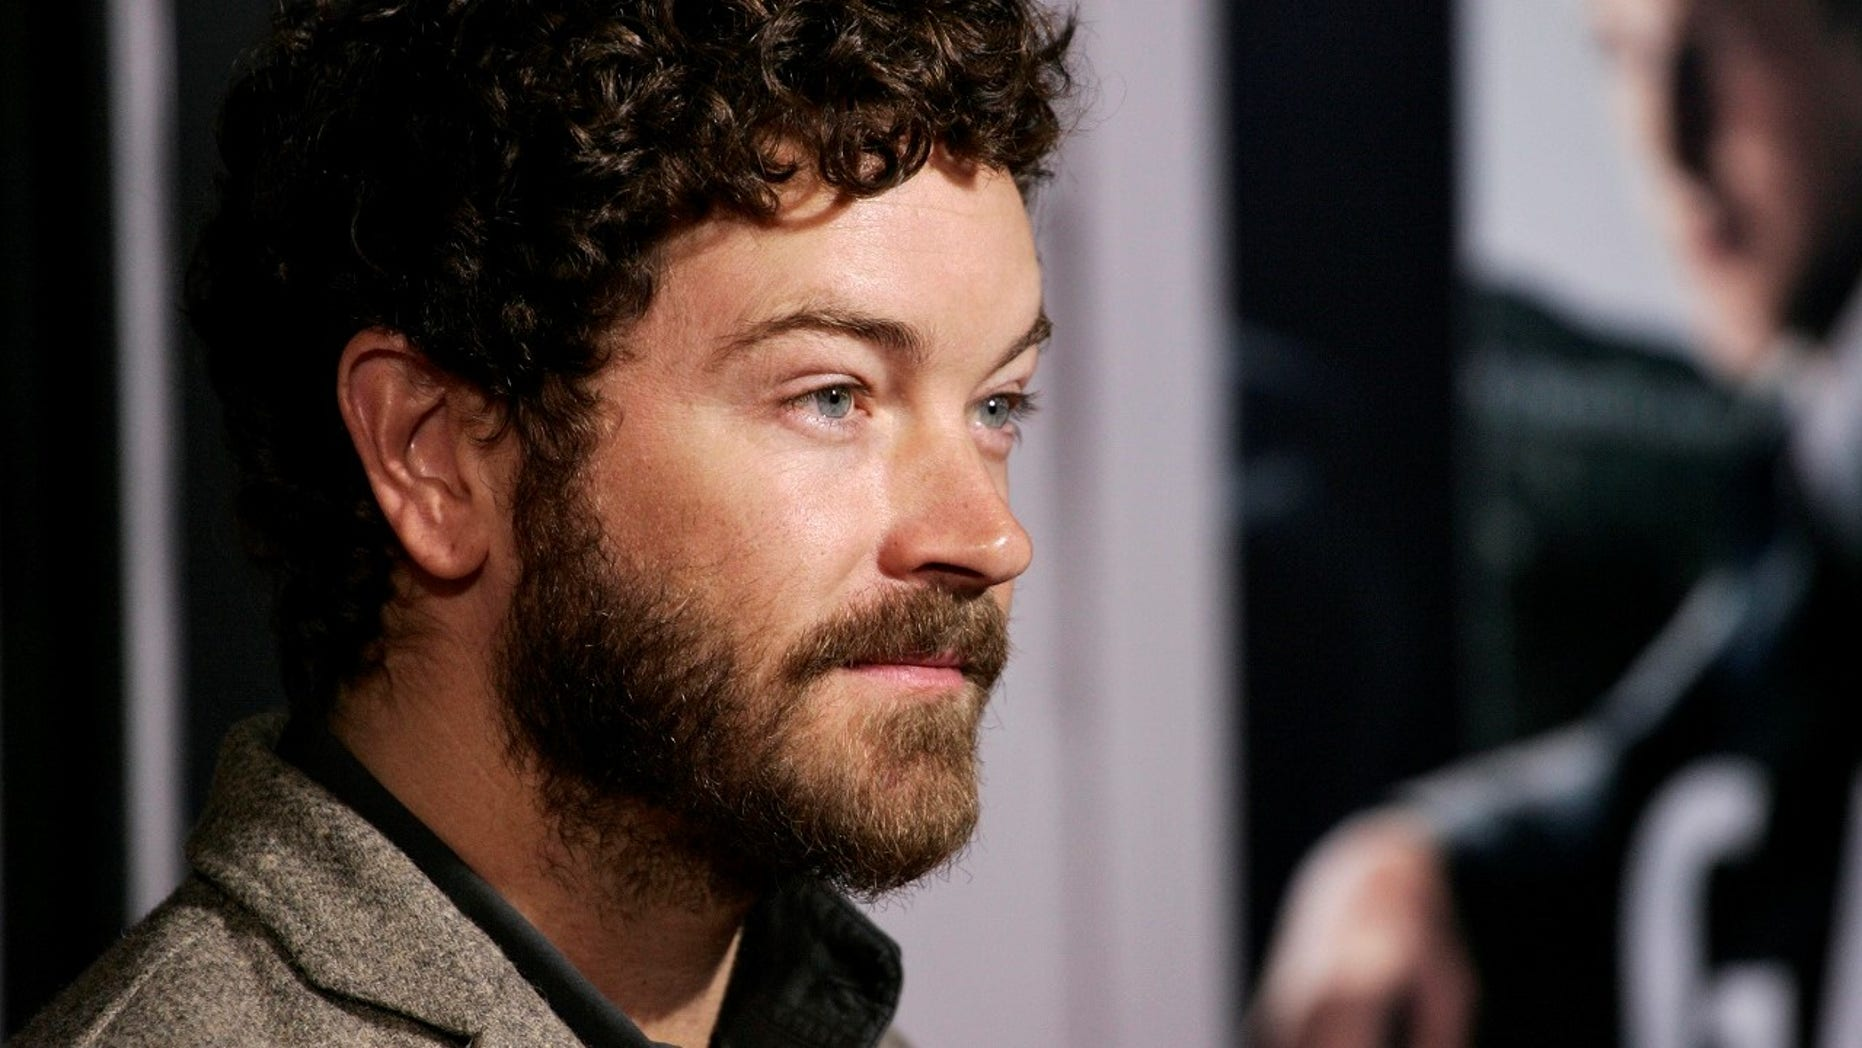 Four women accused Danny Masterson of rape, a report by the HuffPost said on Thursday.